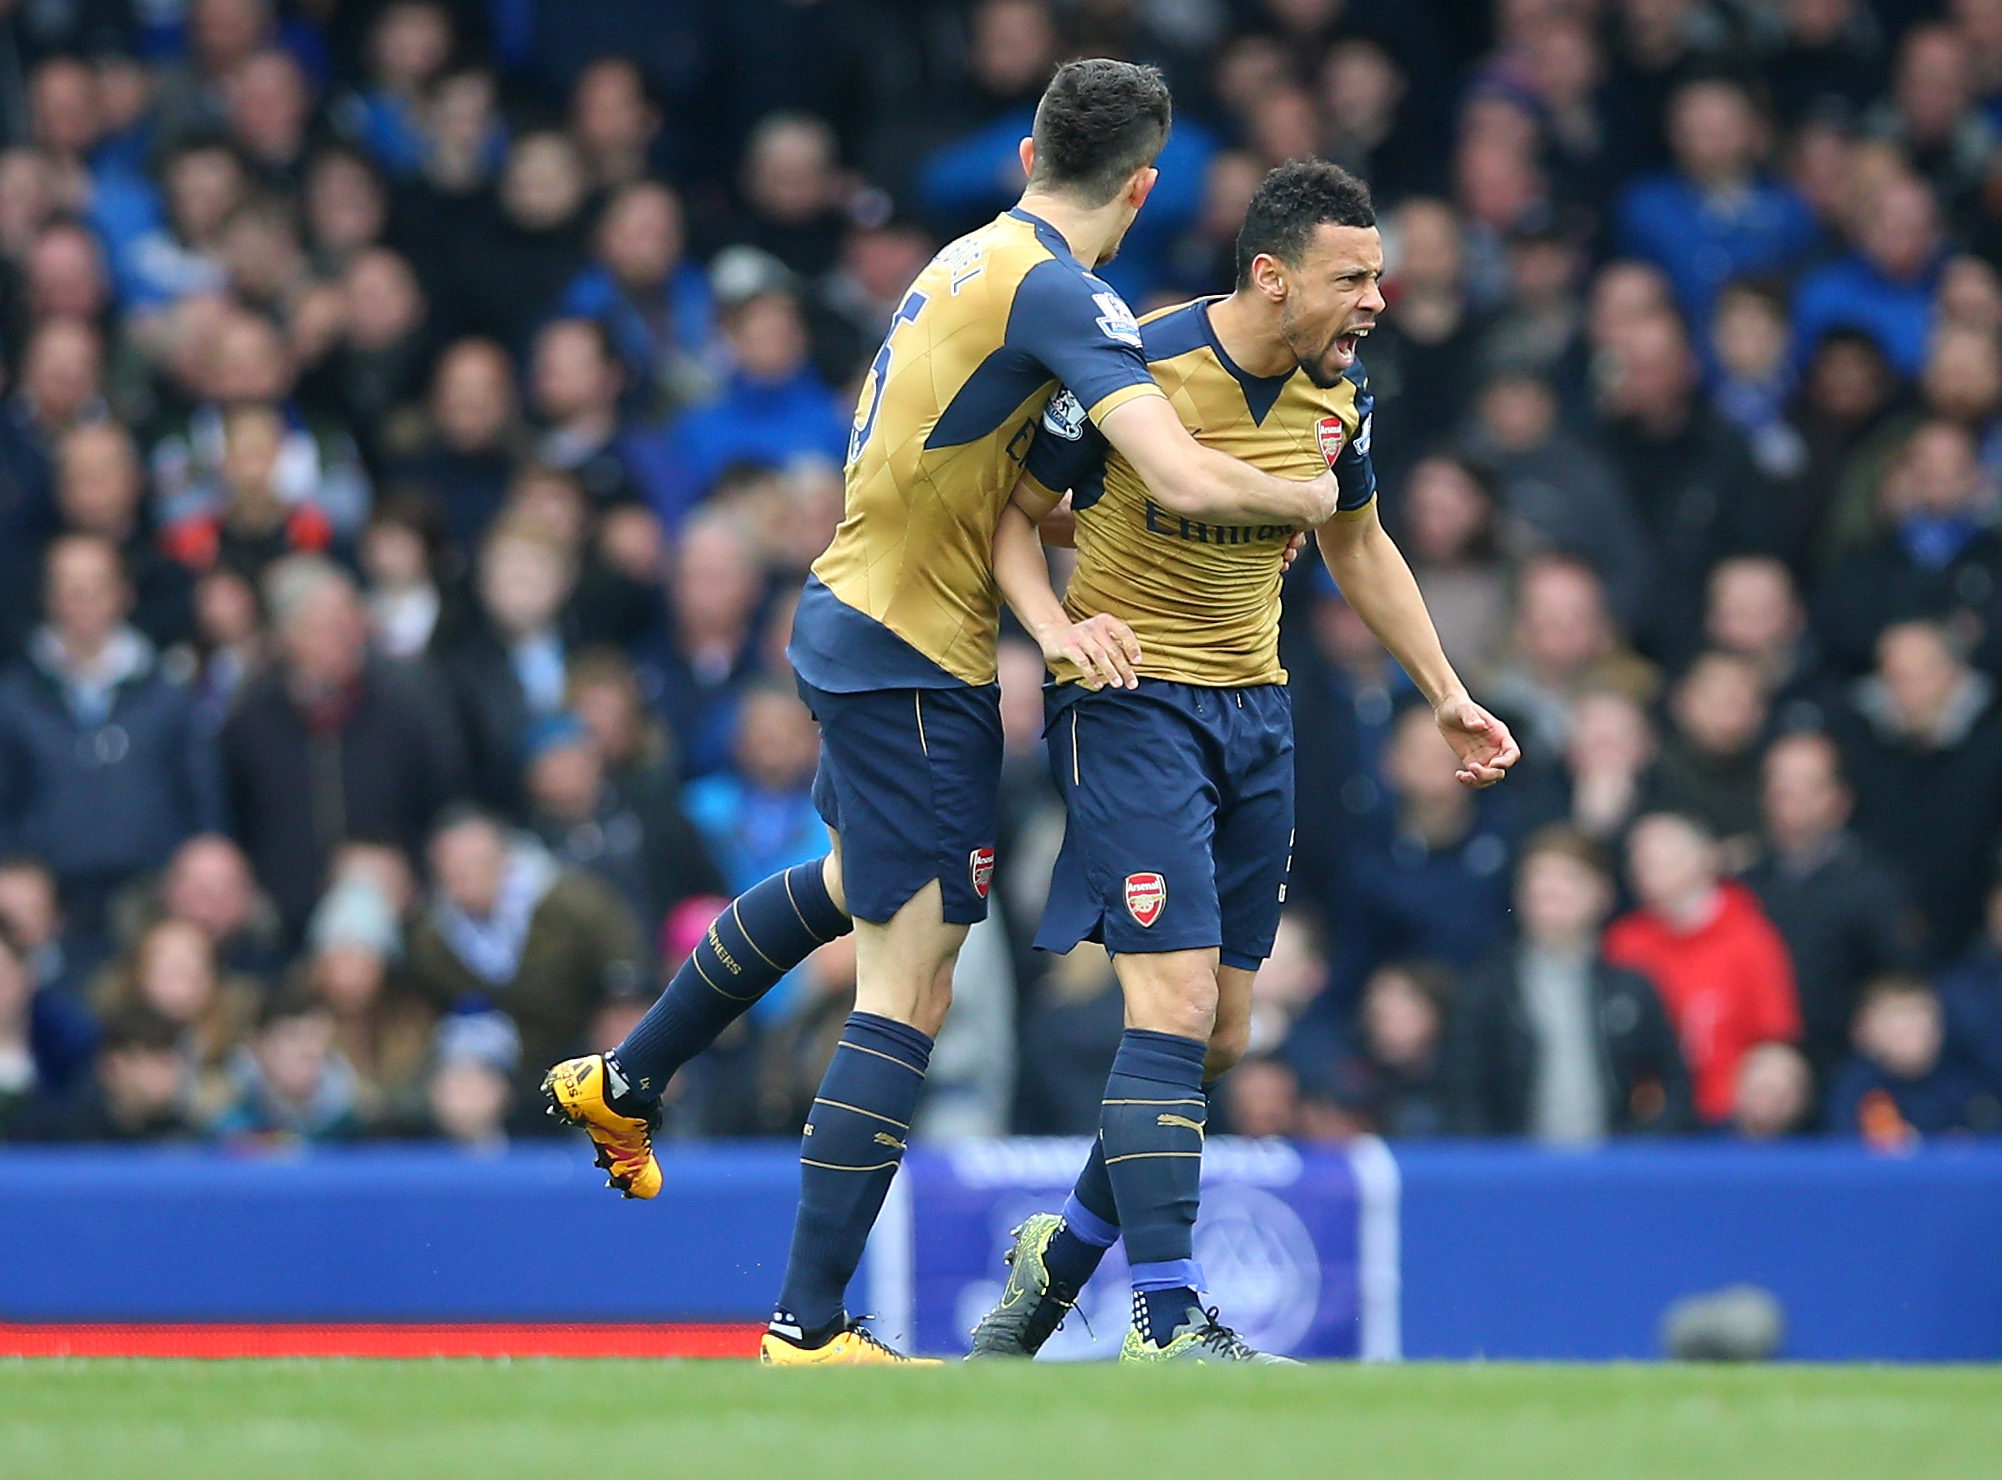 Watford, Arsenal, Arsenal Watfordi, Watford Arsenal, Watford lineup, Arsenal lineup, Arsenal starting lineup, line up, today, starting lineup today, xi, 11, stream, online, channel, when, time, watch, free, live